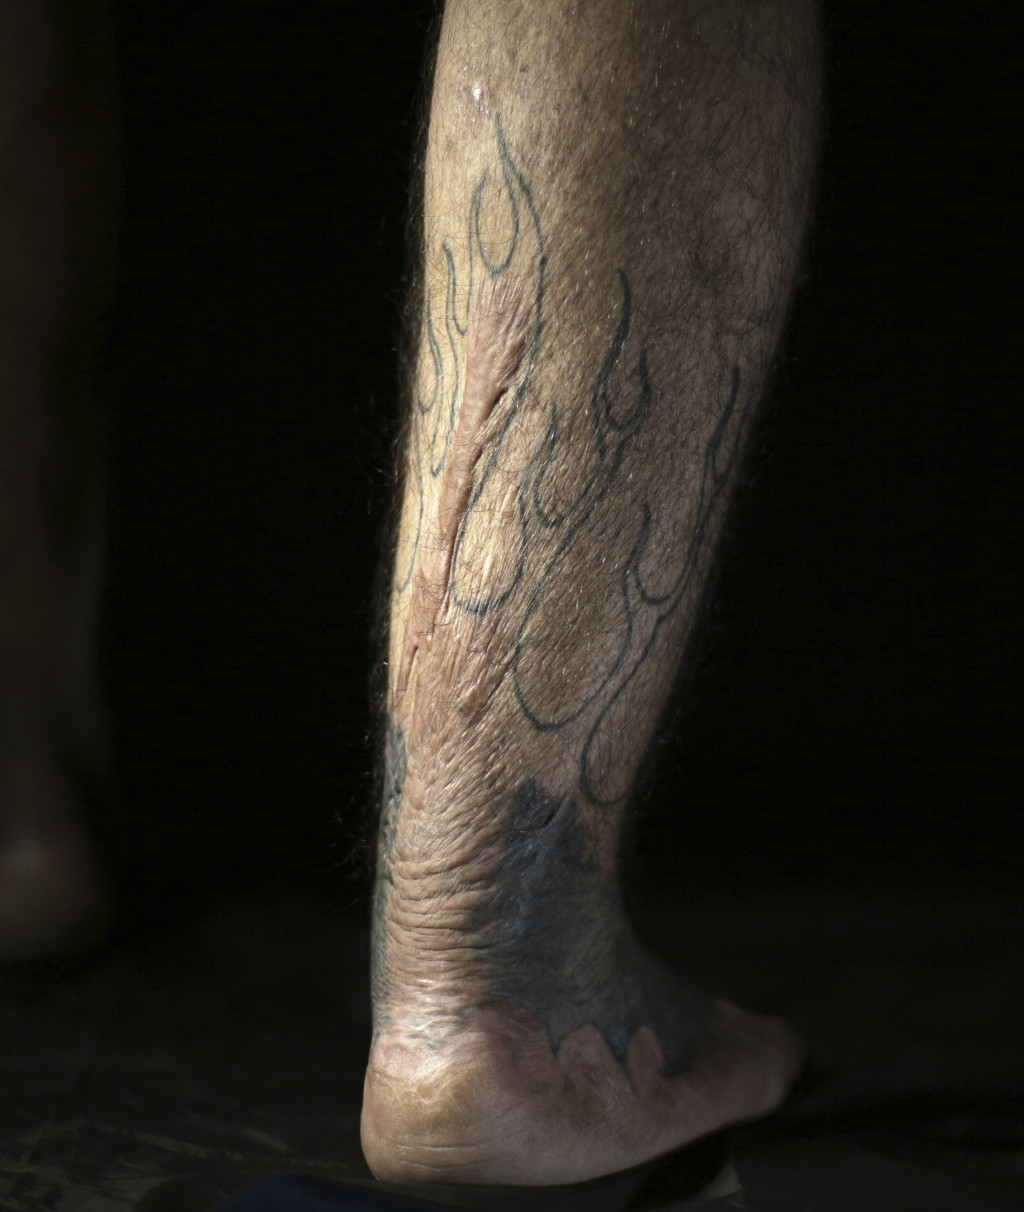 In this Wednesday. Oct. 24, 2018, photo, Iraqi soldier Saad Khudeir displays a tattoo on his leg to cover scars of the burns he suffered in a car bomb